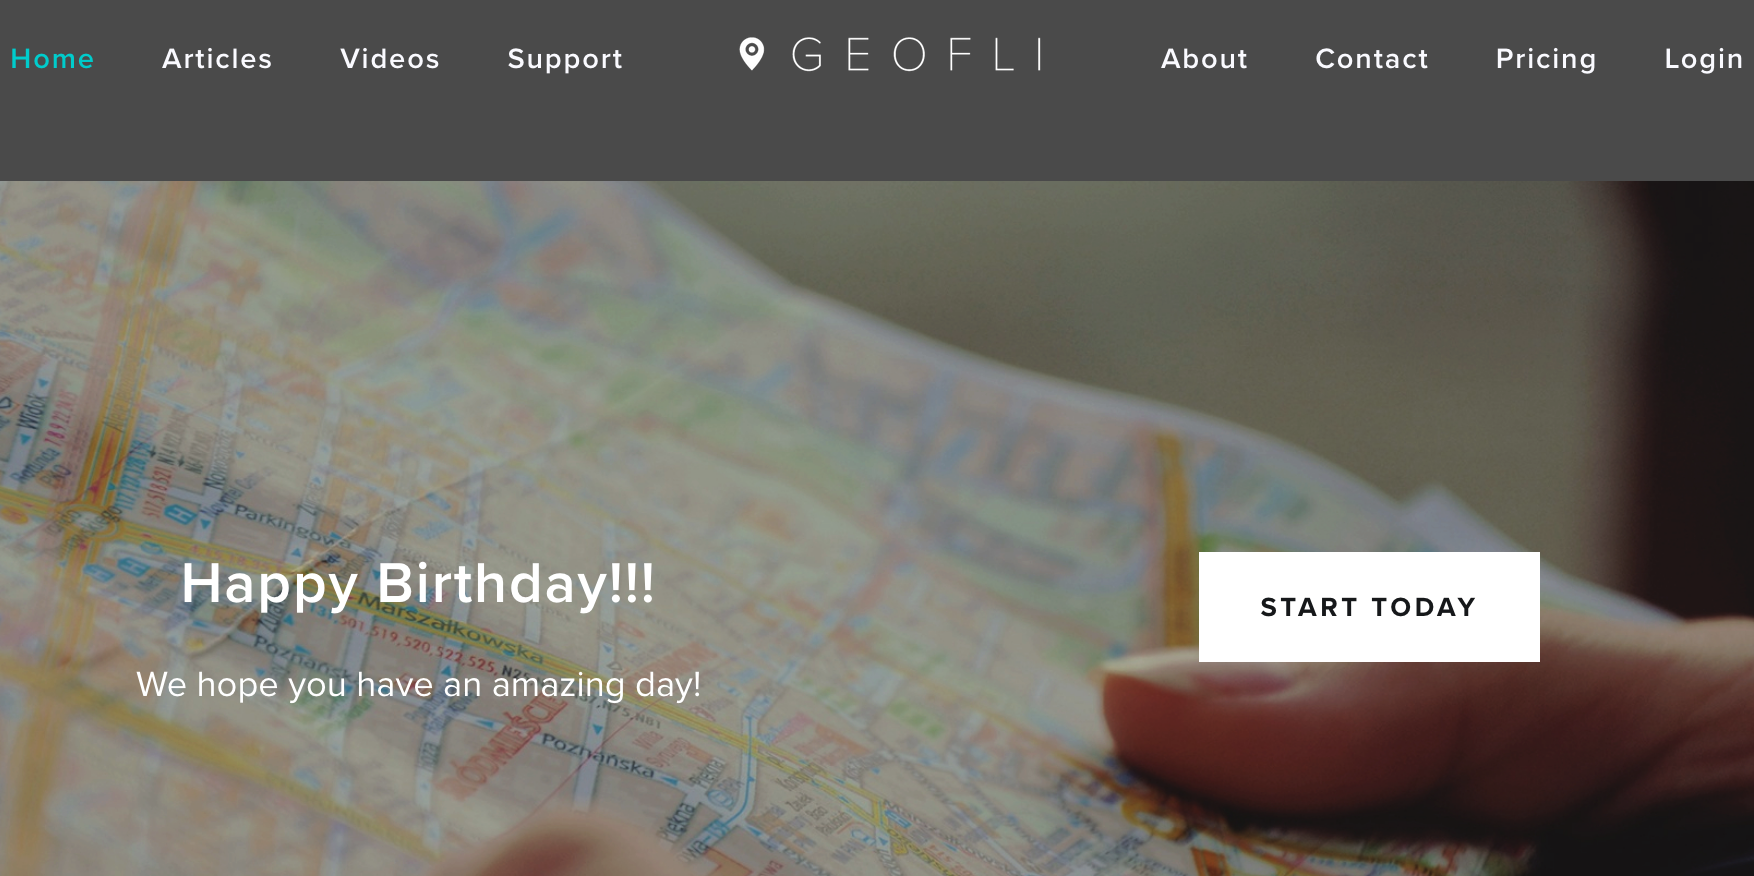 GeoFli Happy Birthday